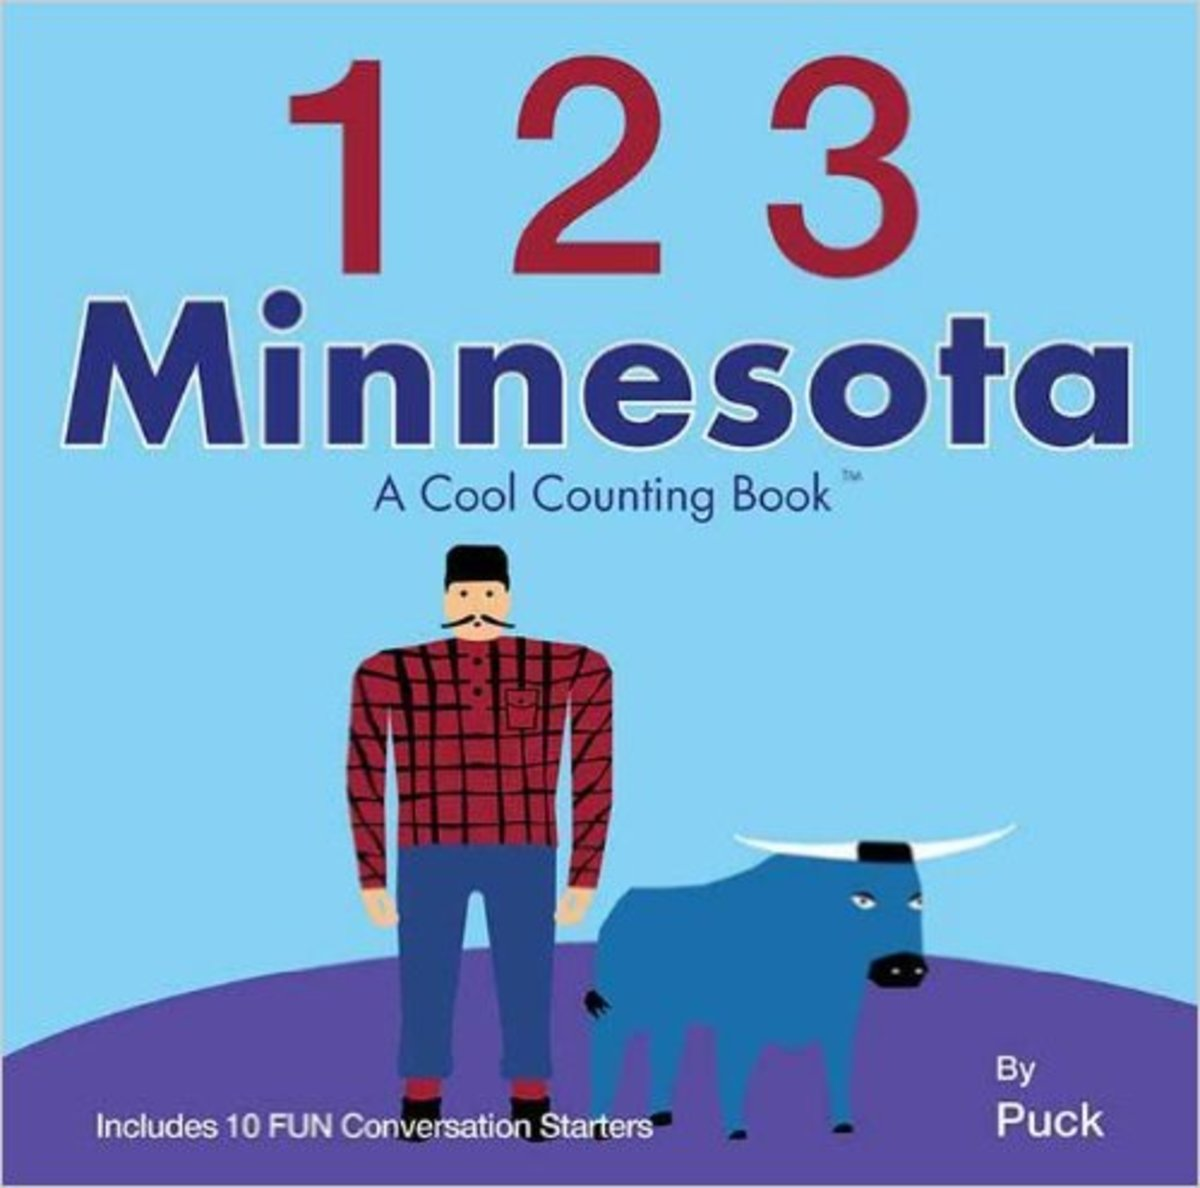 123 Minnesota: A Cool Counting Book (Cool Counting Books) Board book by Puck